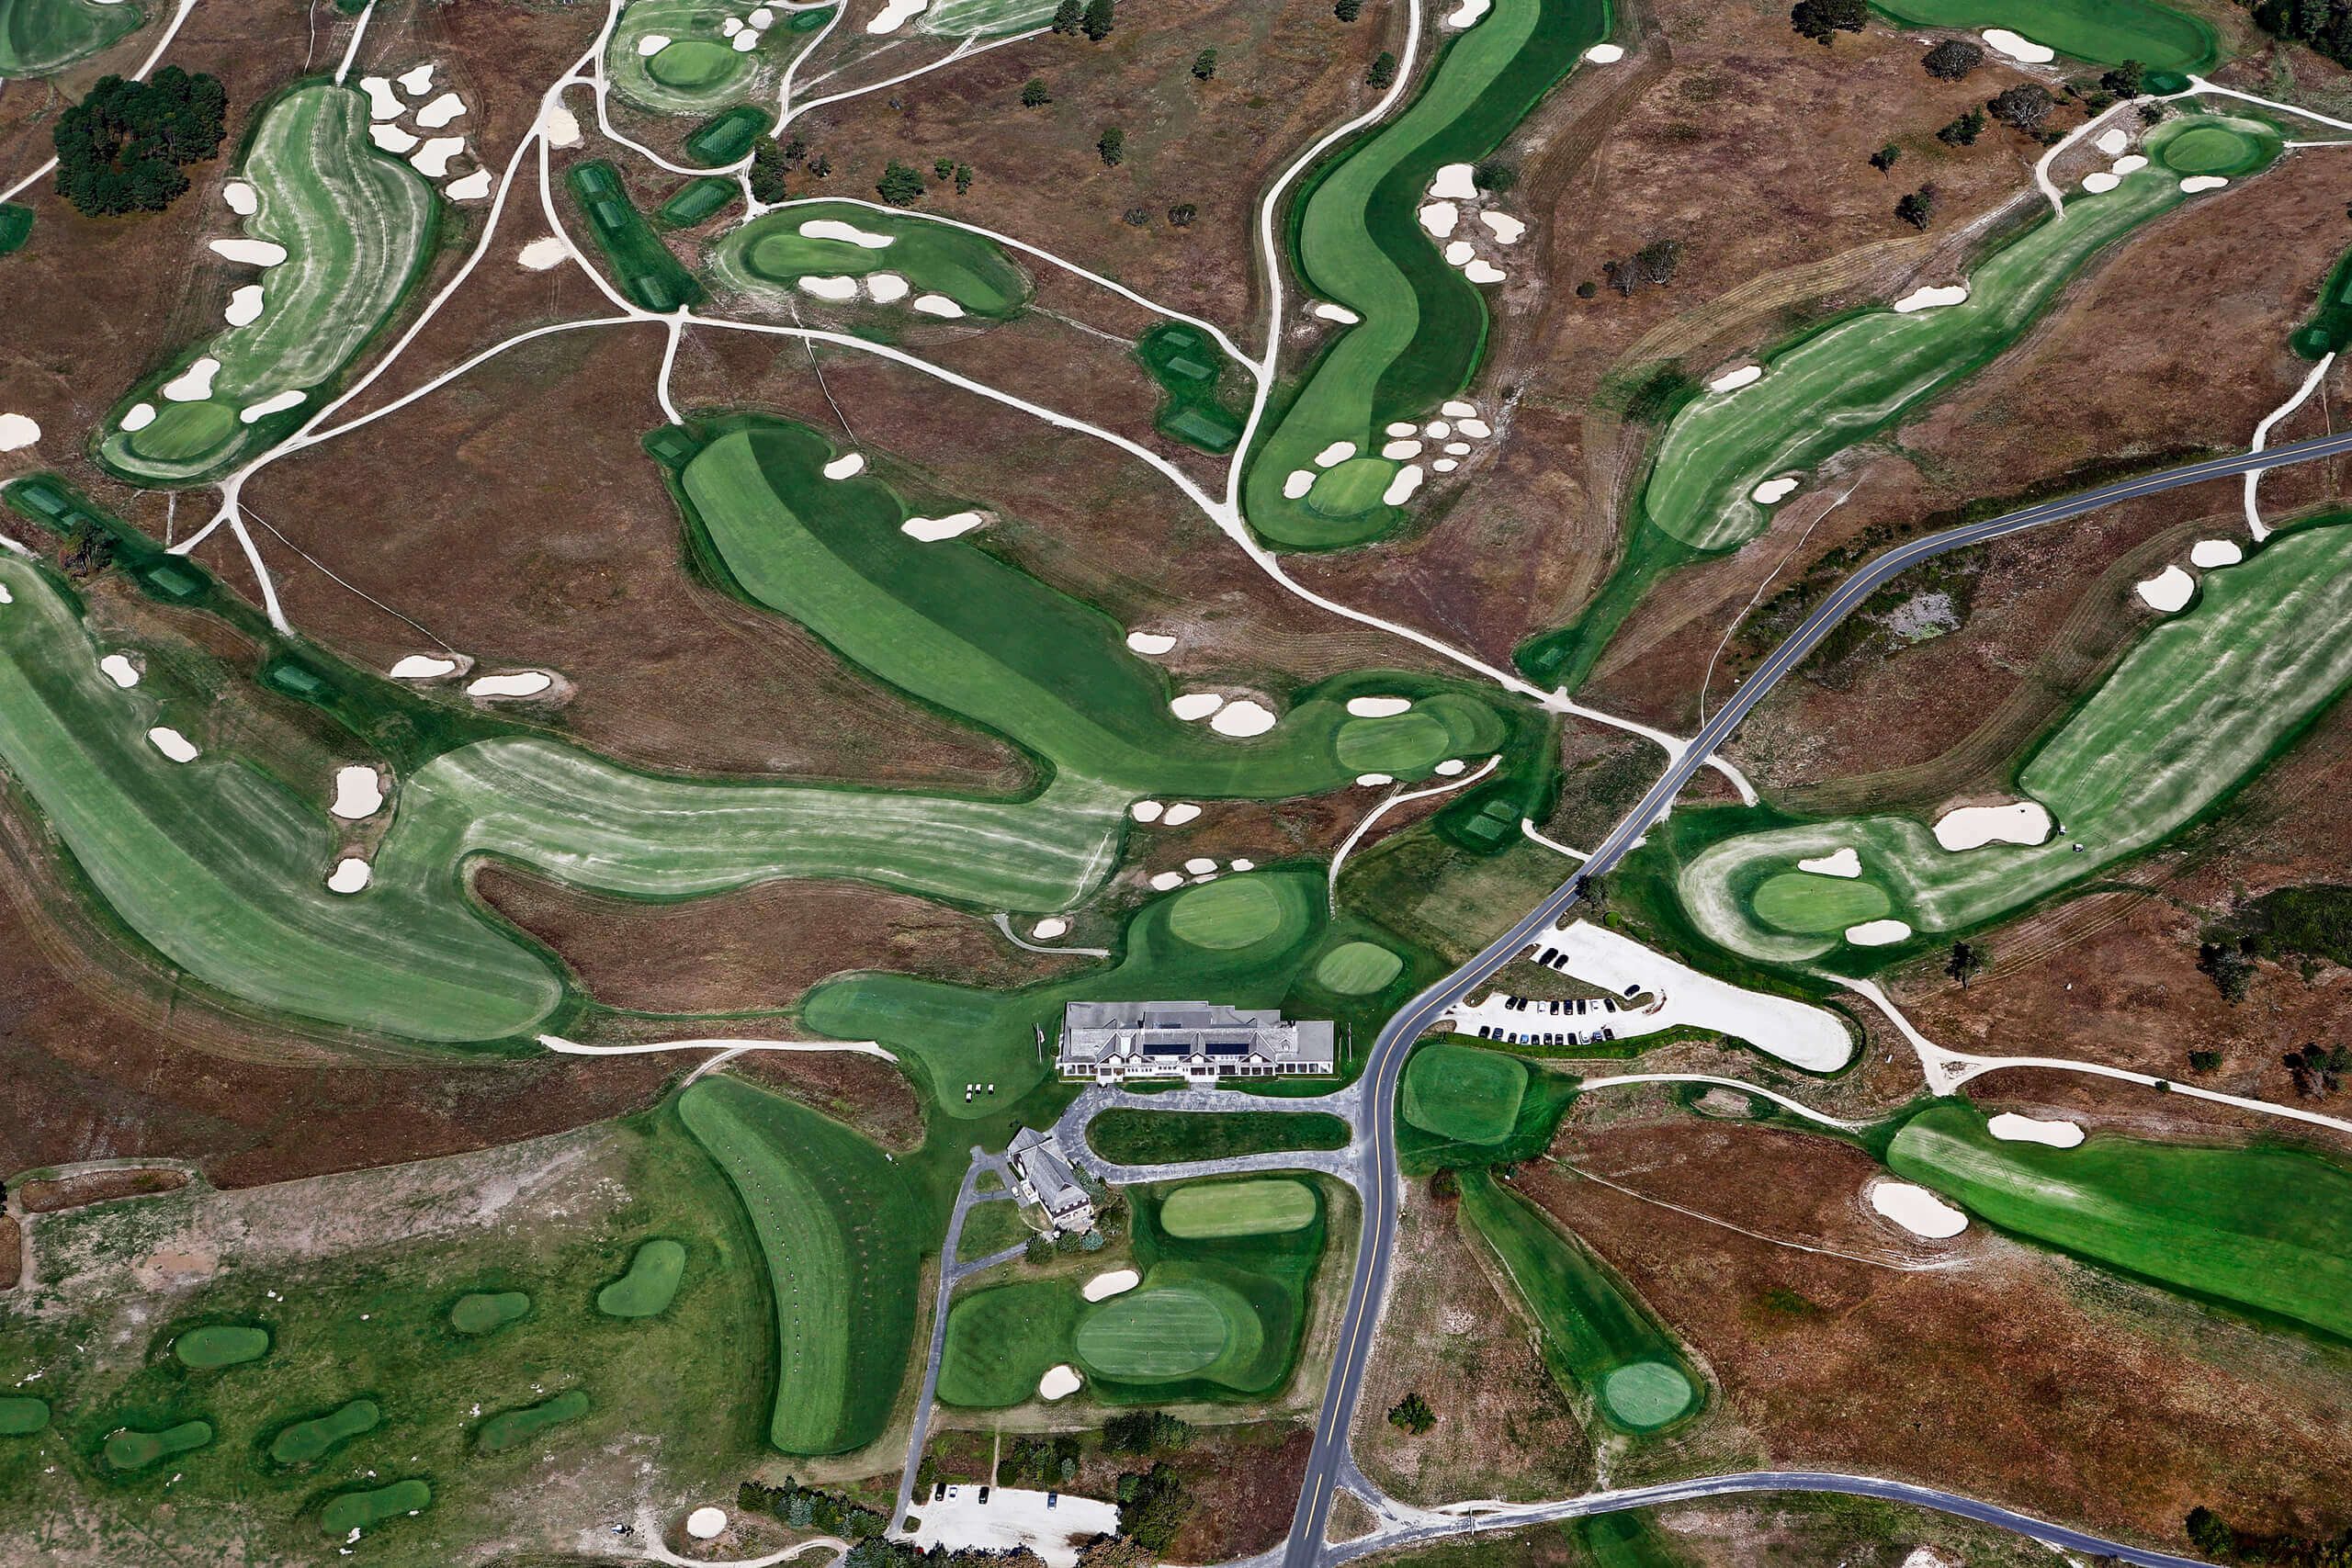 Aerial photo of Shinnecock Hill Golf Course in Long Island.